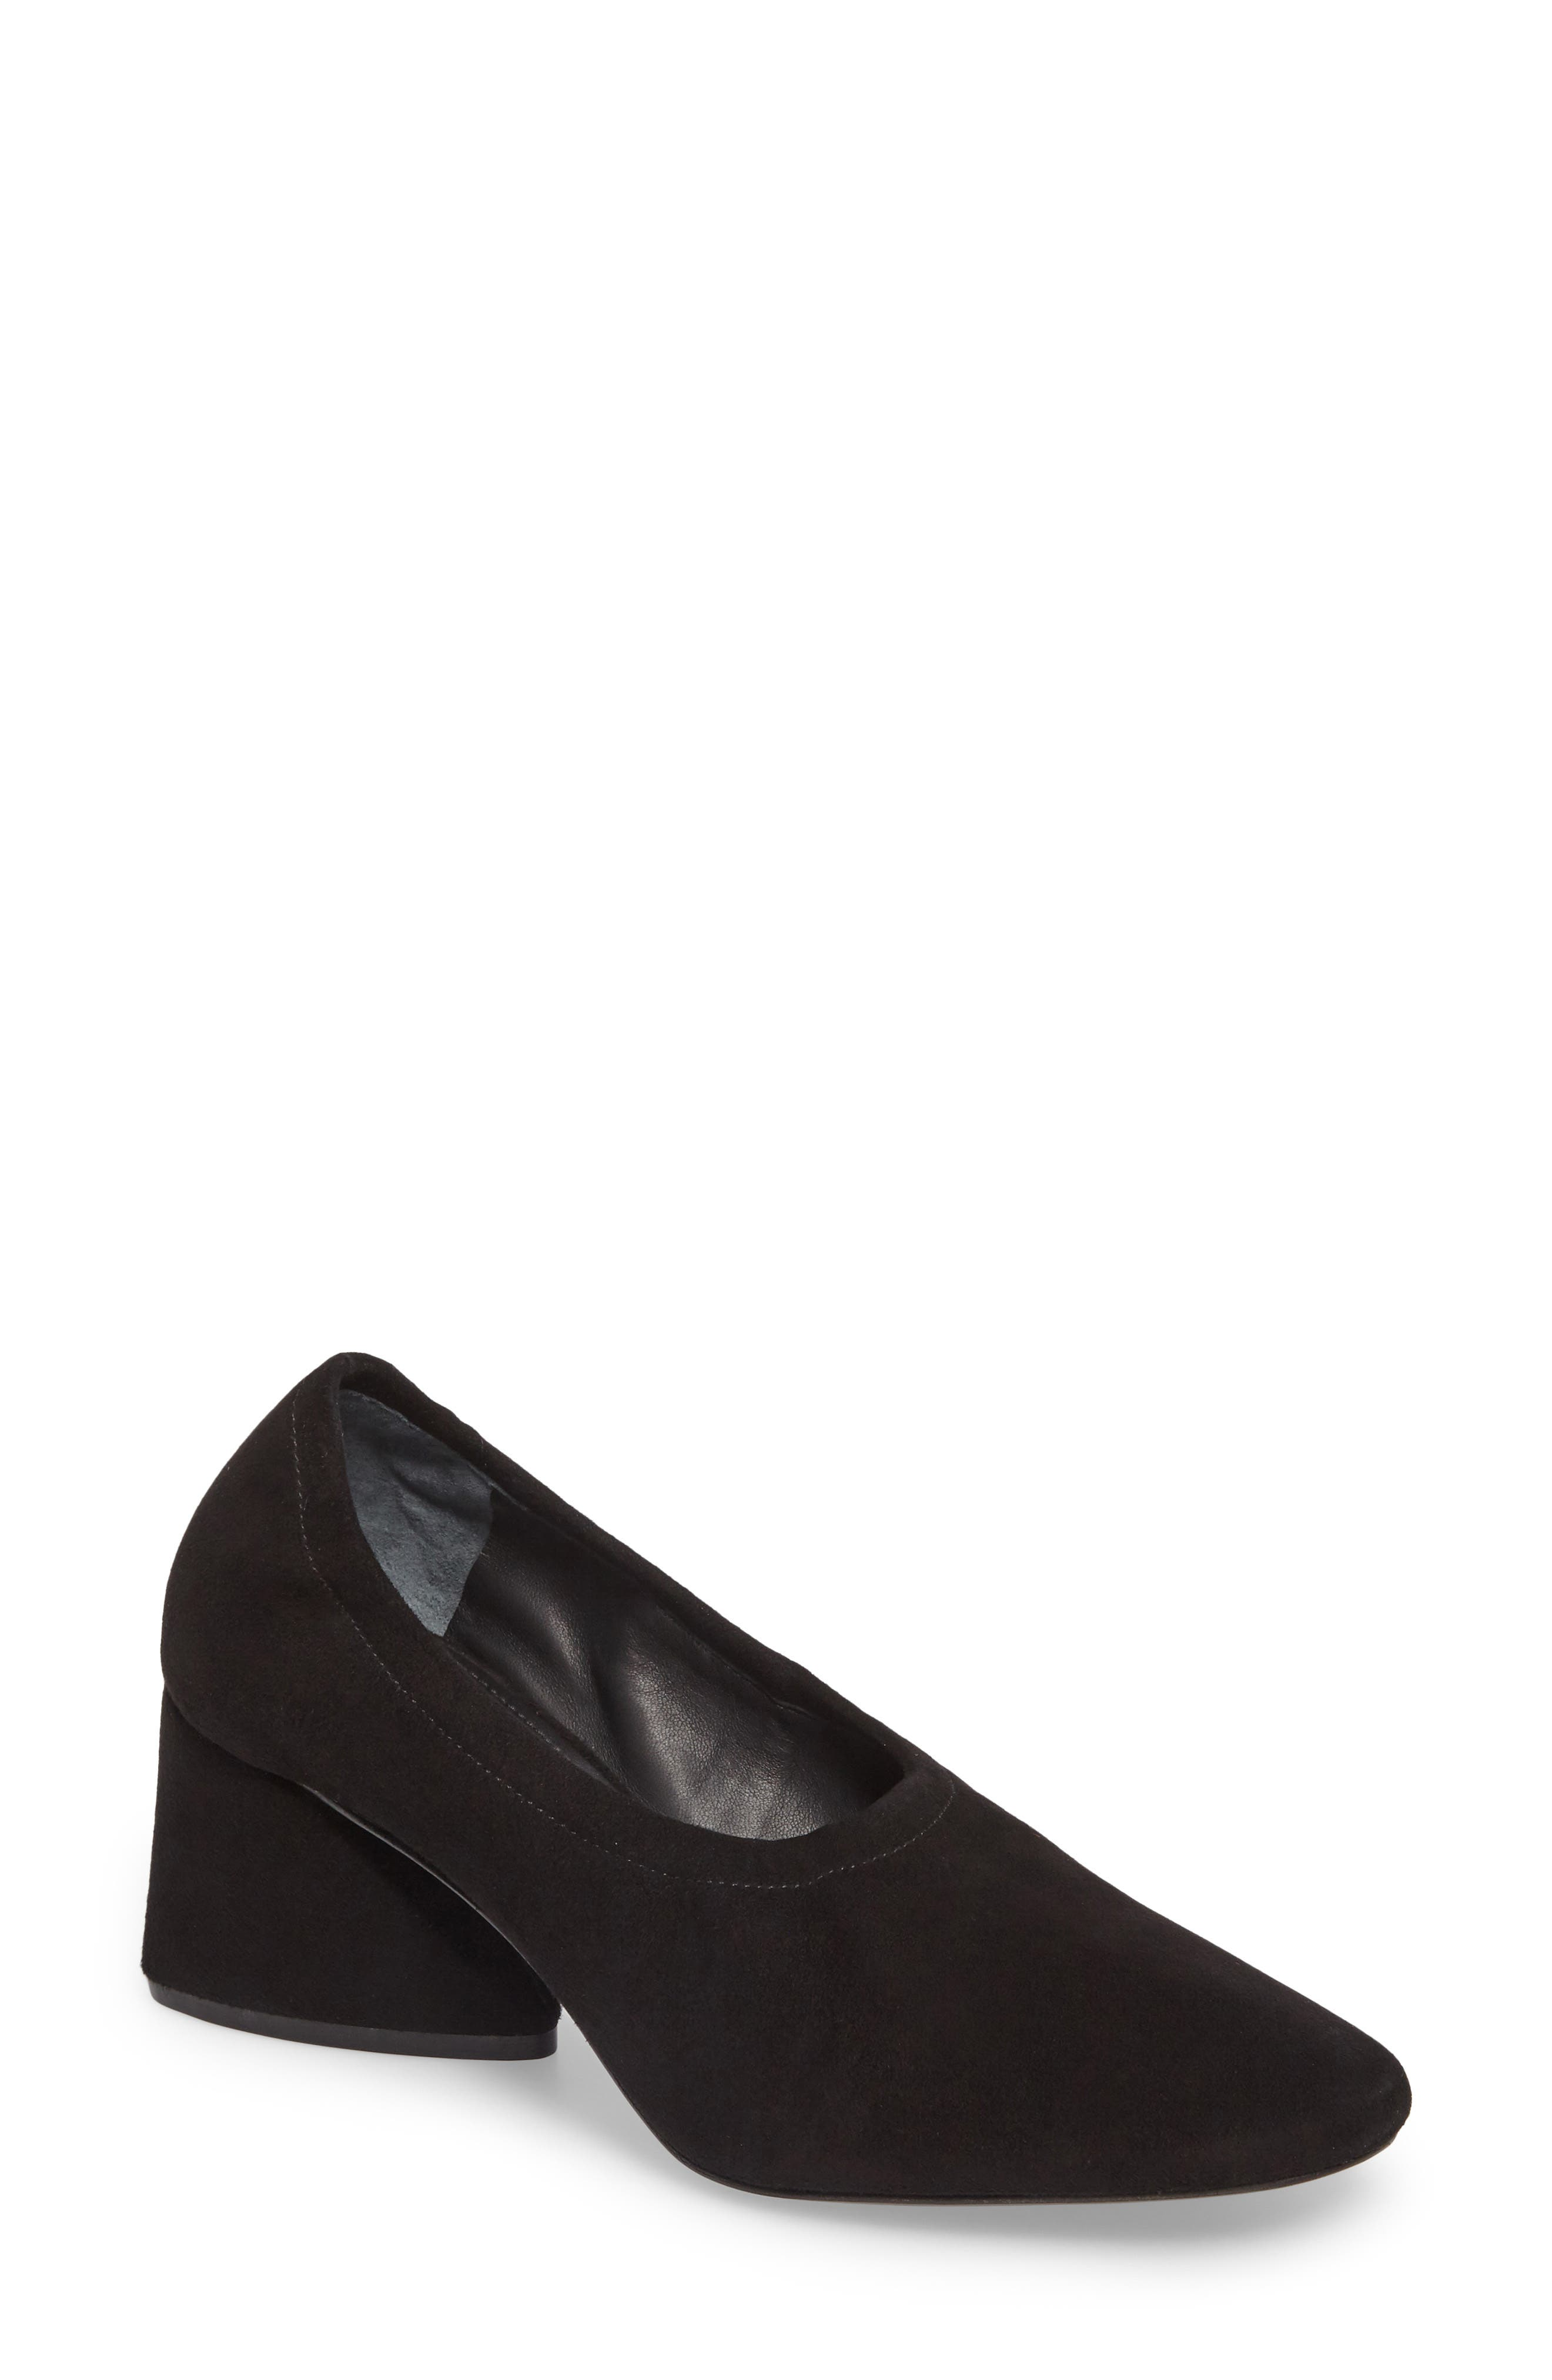 Emilia Pump,                             Main thumbnail 1, color,                             Black Suede